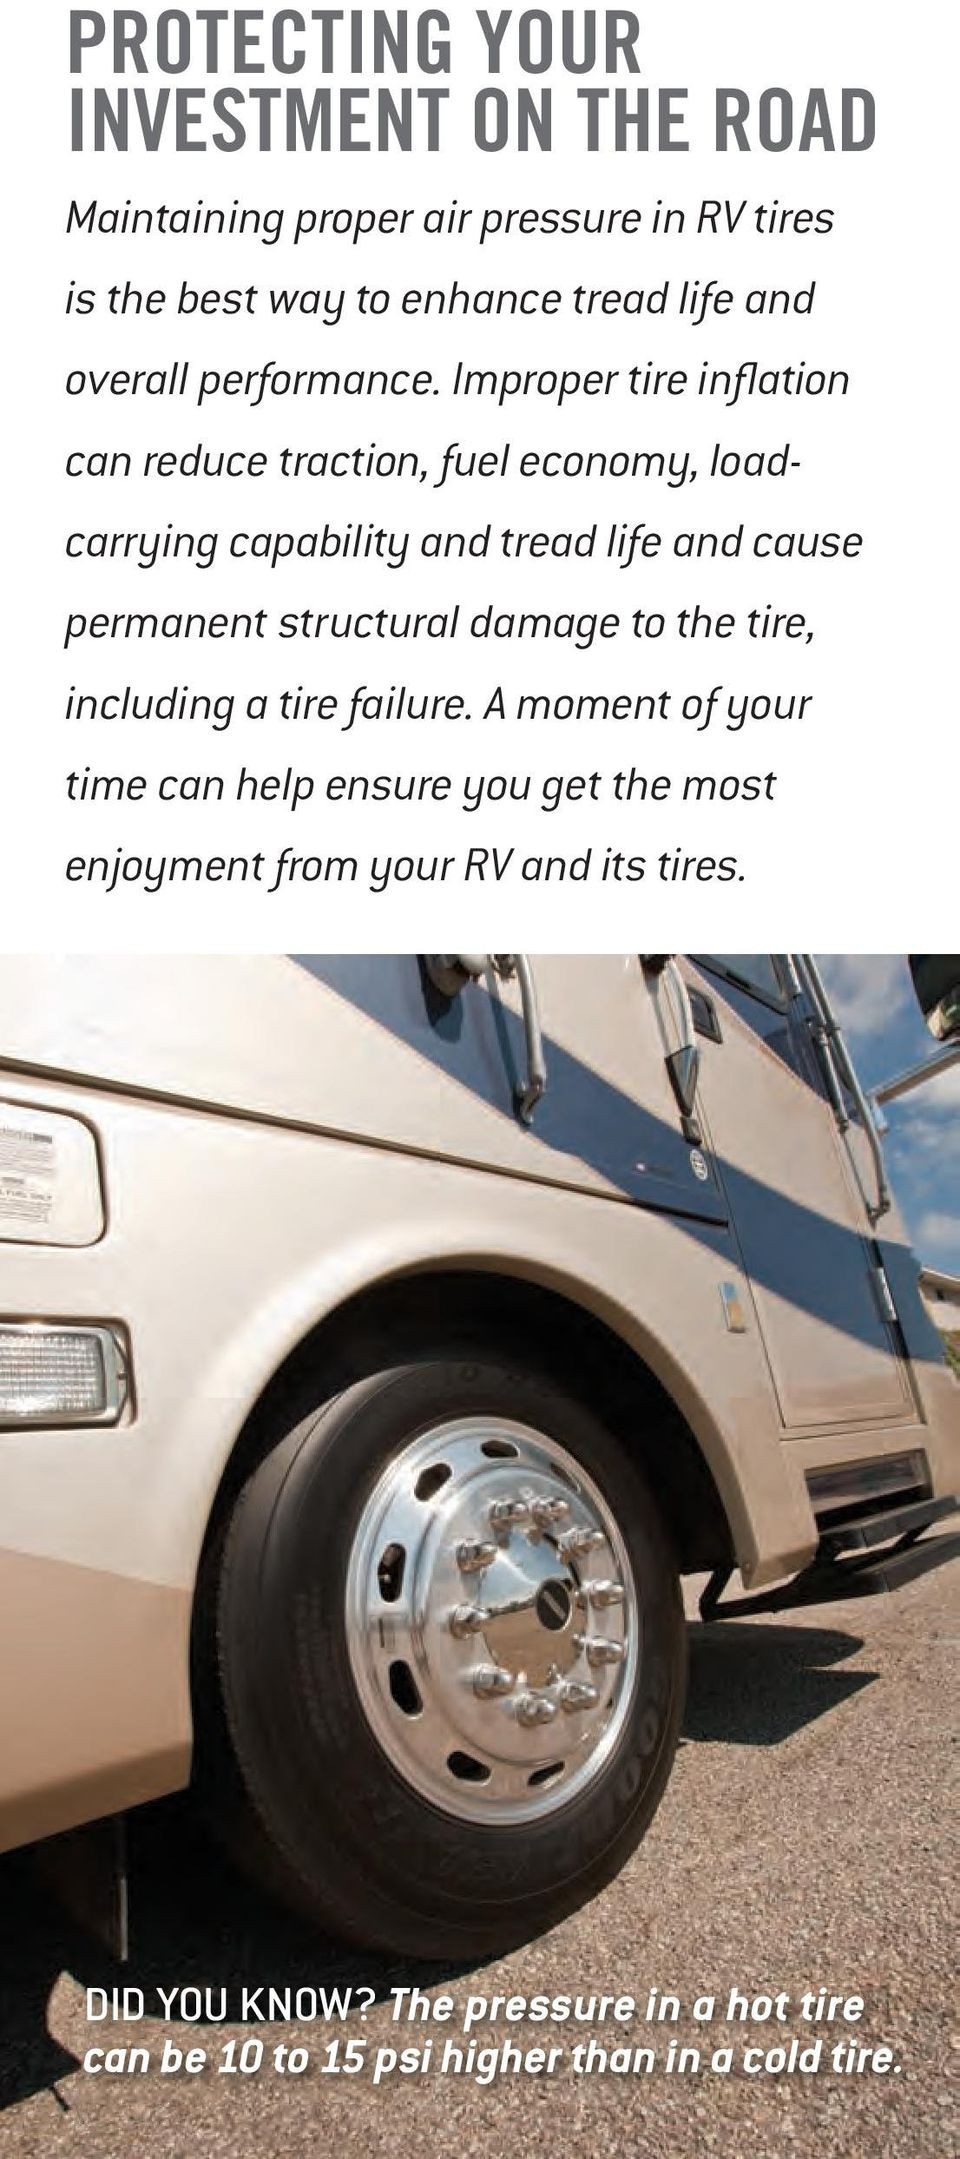 Improper tire inflation can reduce traction, fuel economy, loadcarrying capability and tread life and cause permanent